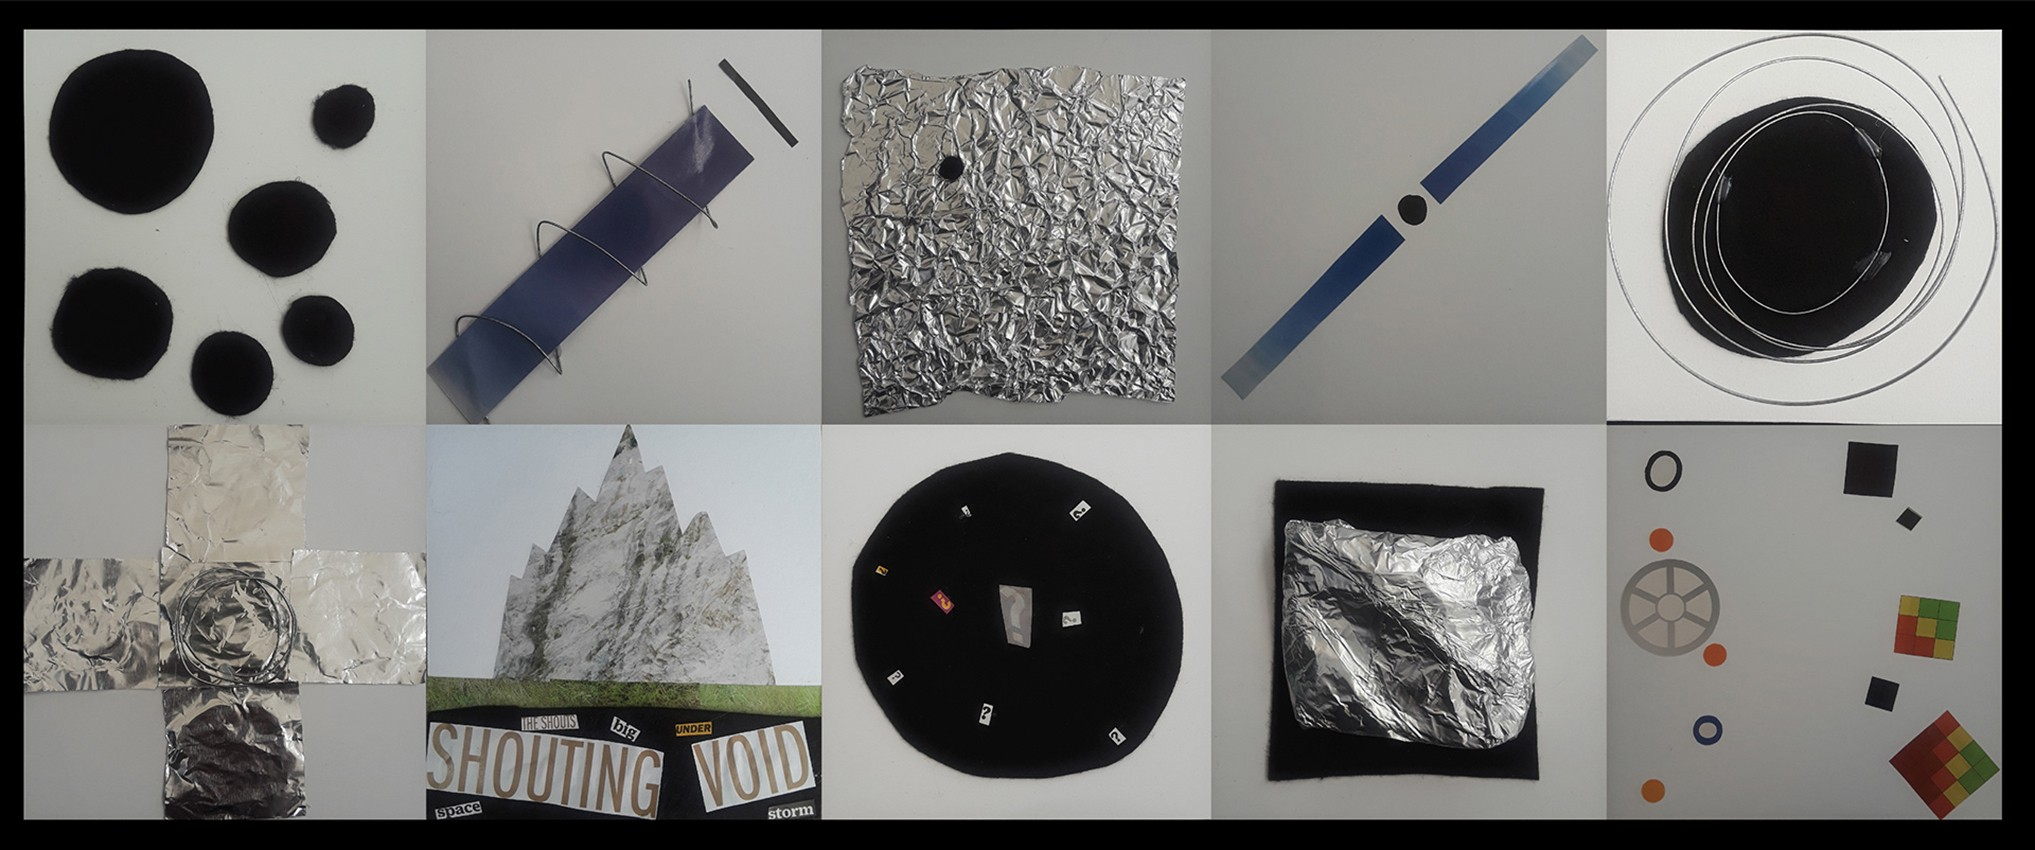 Collage of 10 images using varying materials from magazines, aluminum foil, metallic wiring, and felt